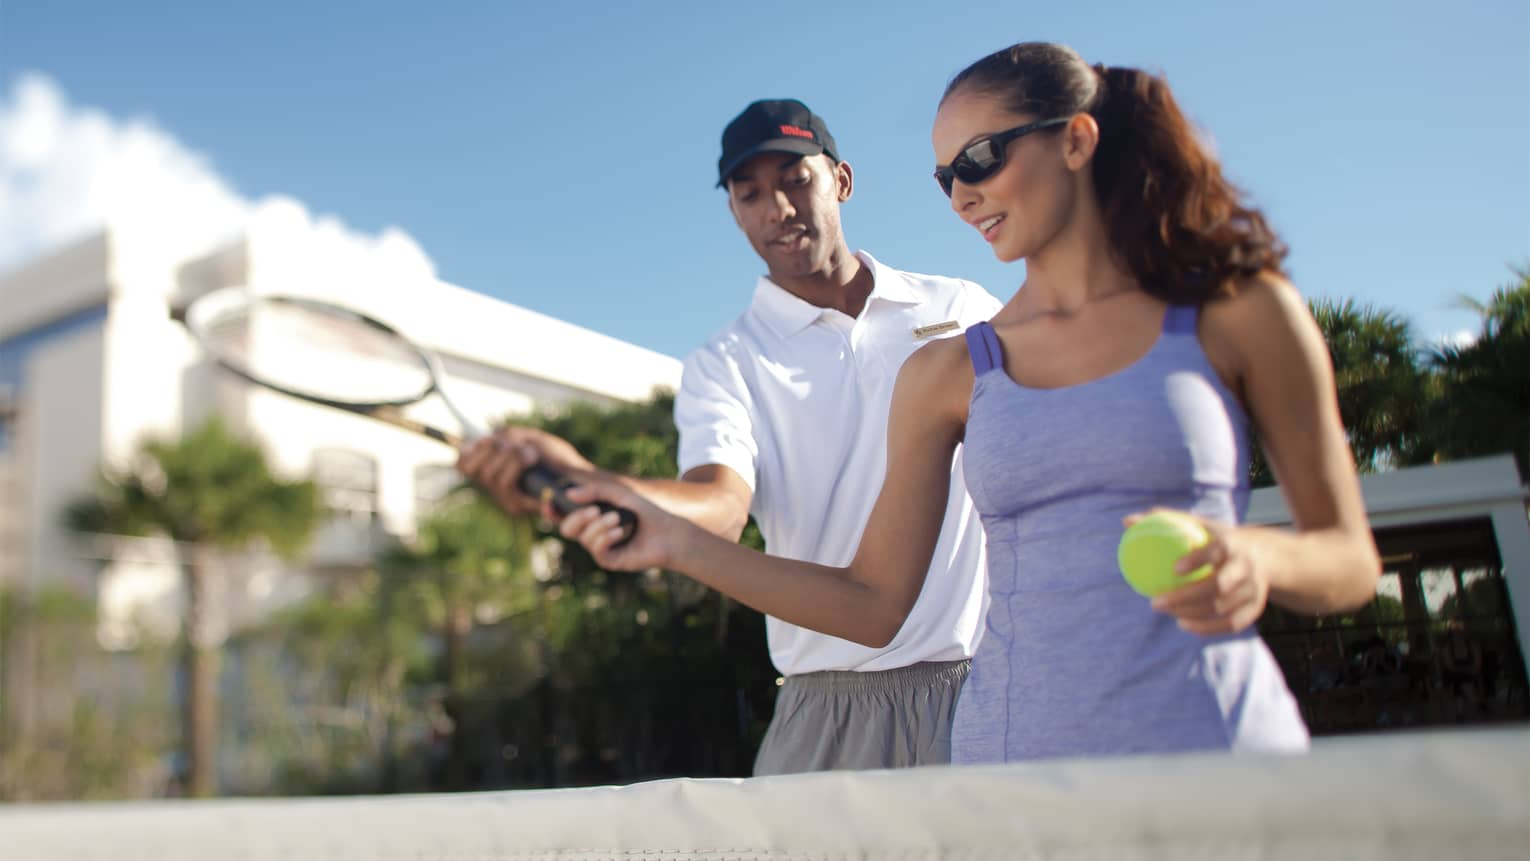 Woman in blue dress holds tennis ball and racket as tennis coach stands behind, assisting with swing